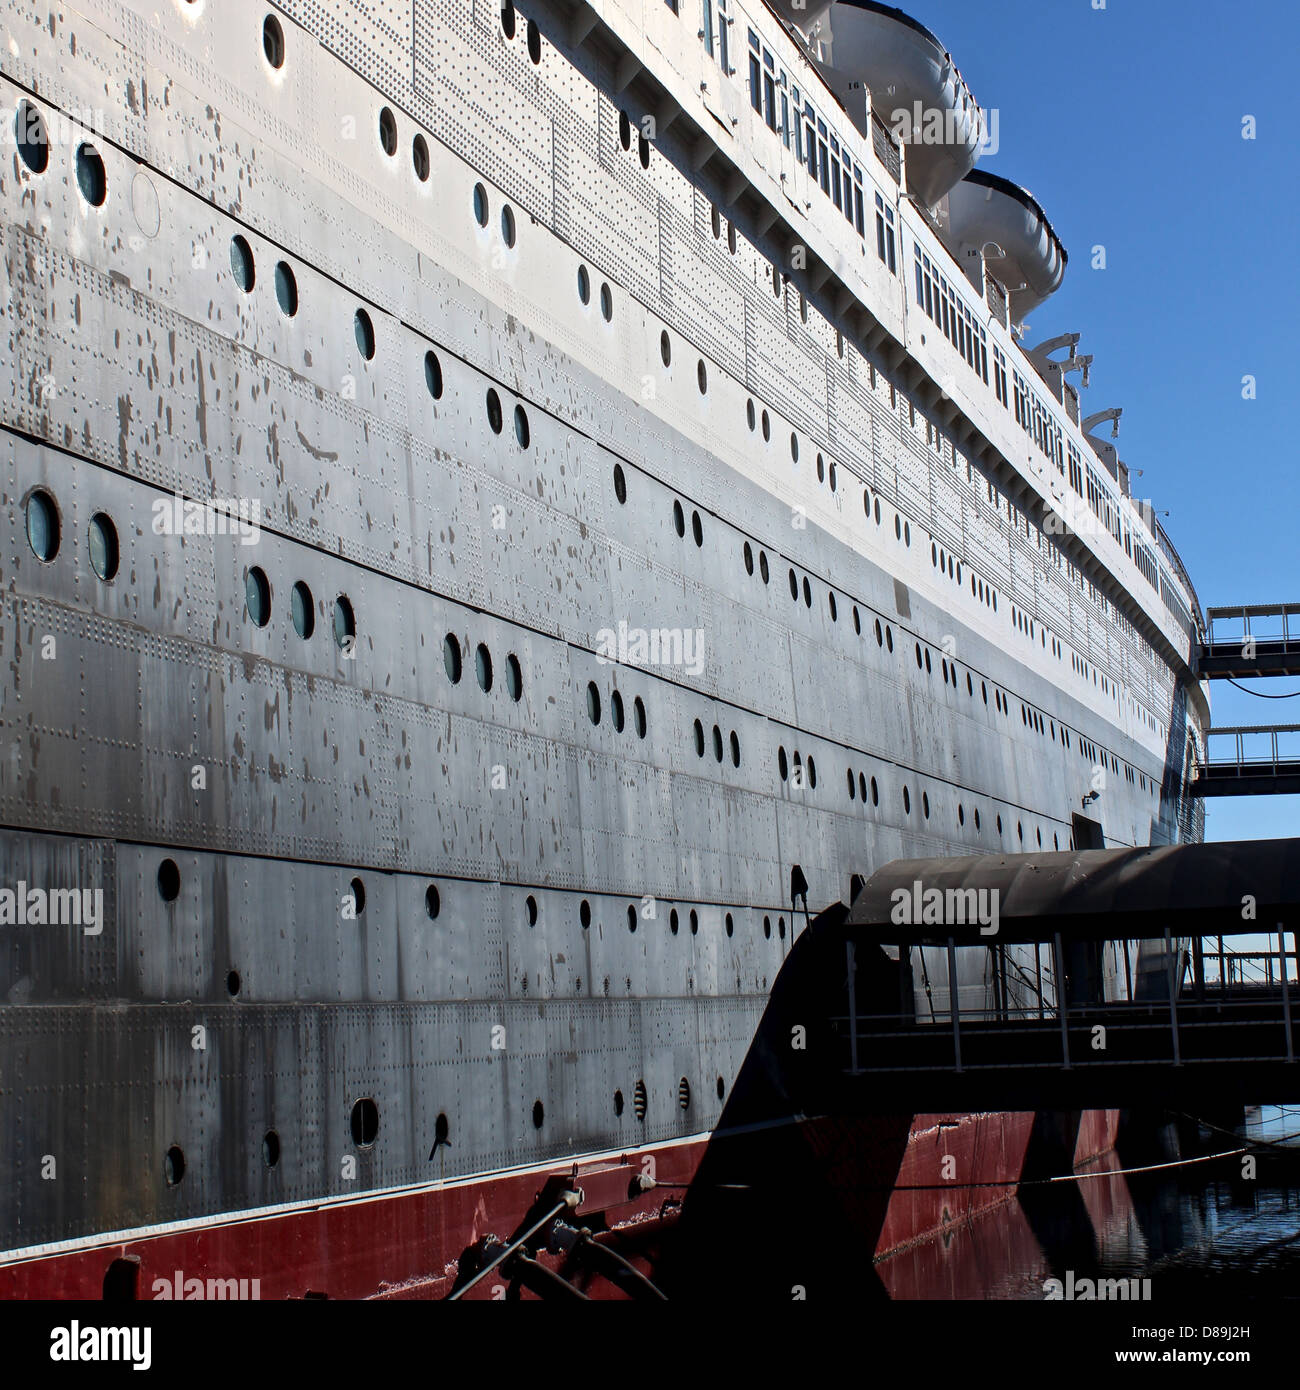 ship, faded glory, ocean liner, antique, queen mary, rivets, rust, old, dock, pier, long beach - Stock Image